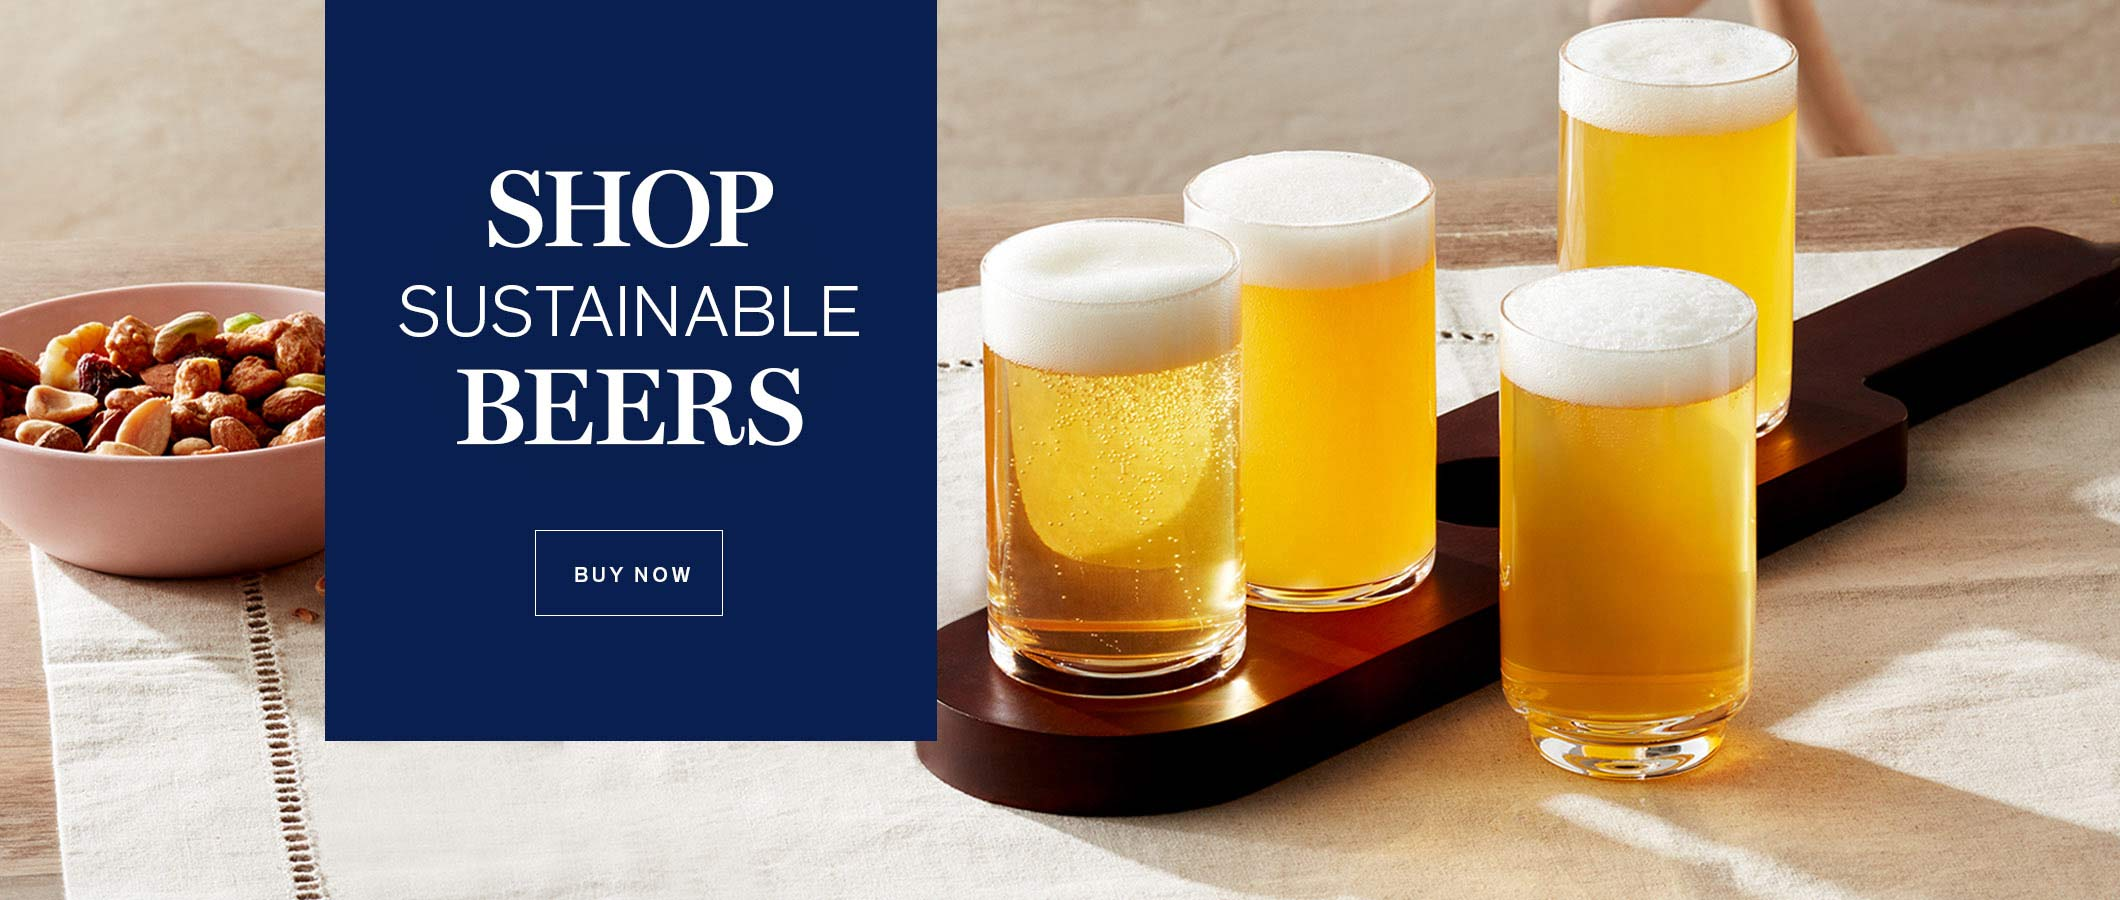 Shop  Sustainable Beers.  BUY NOW